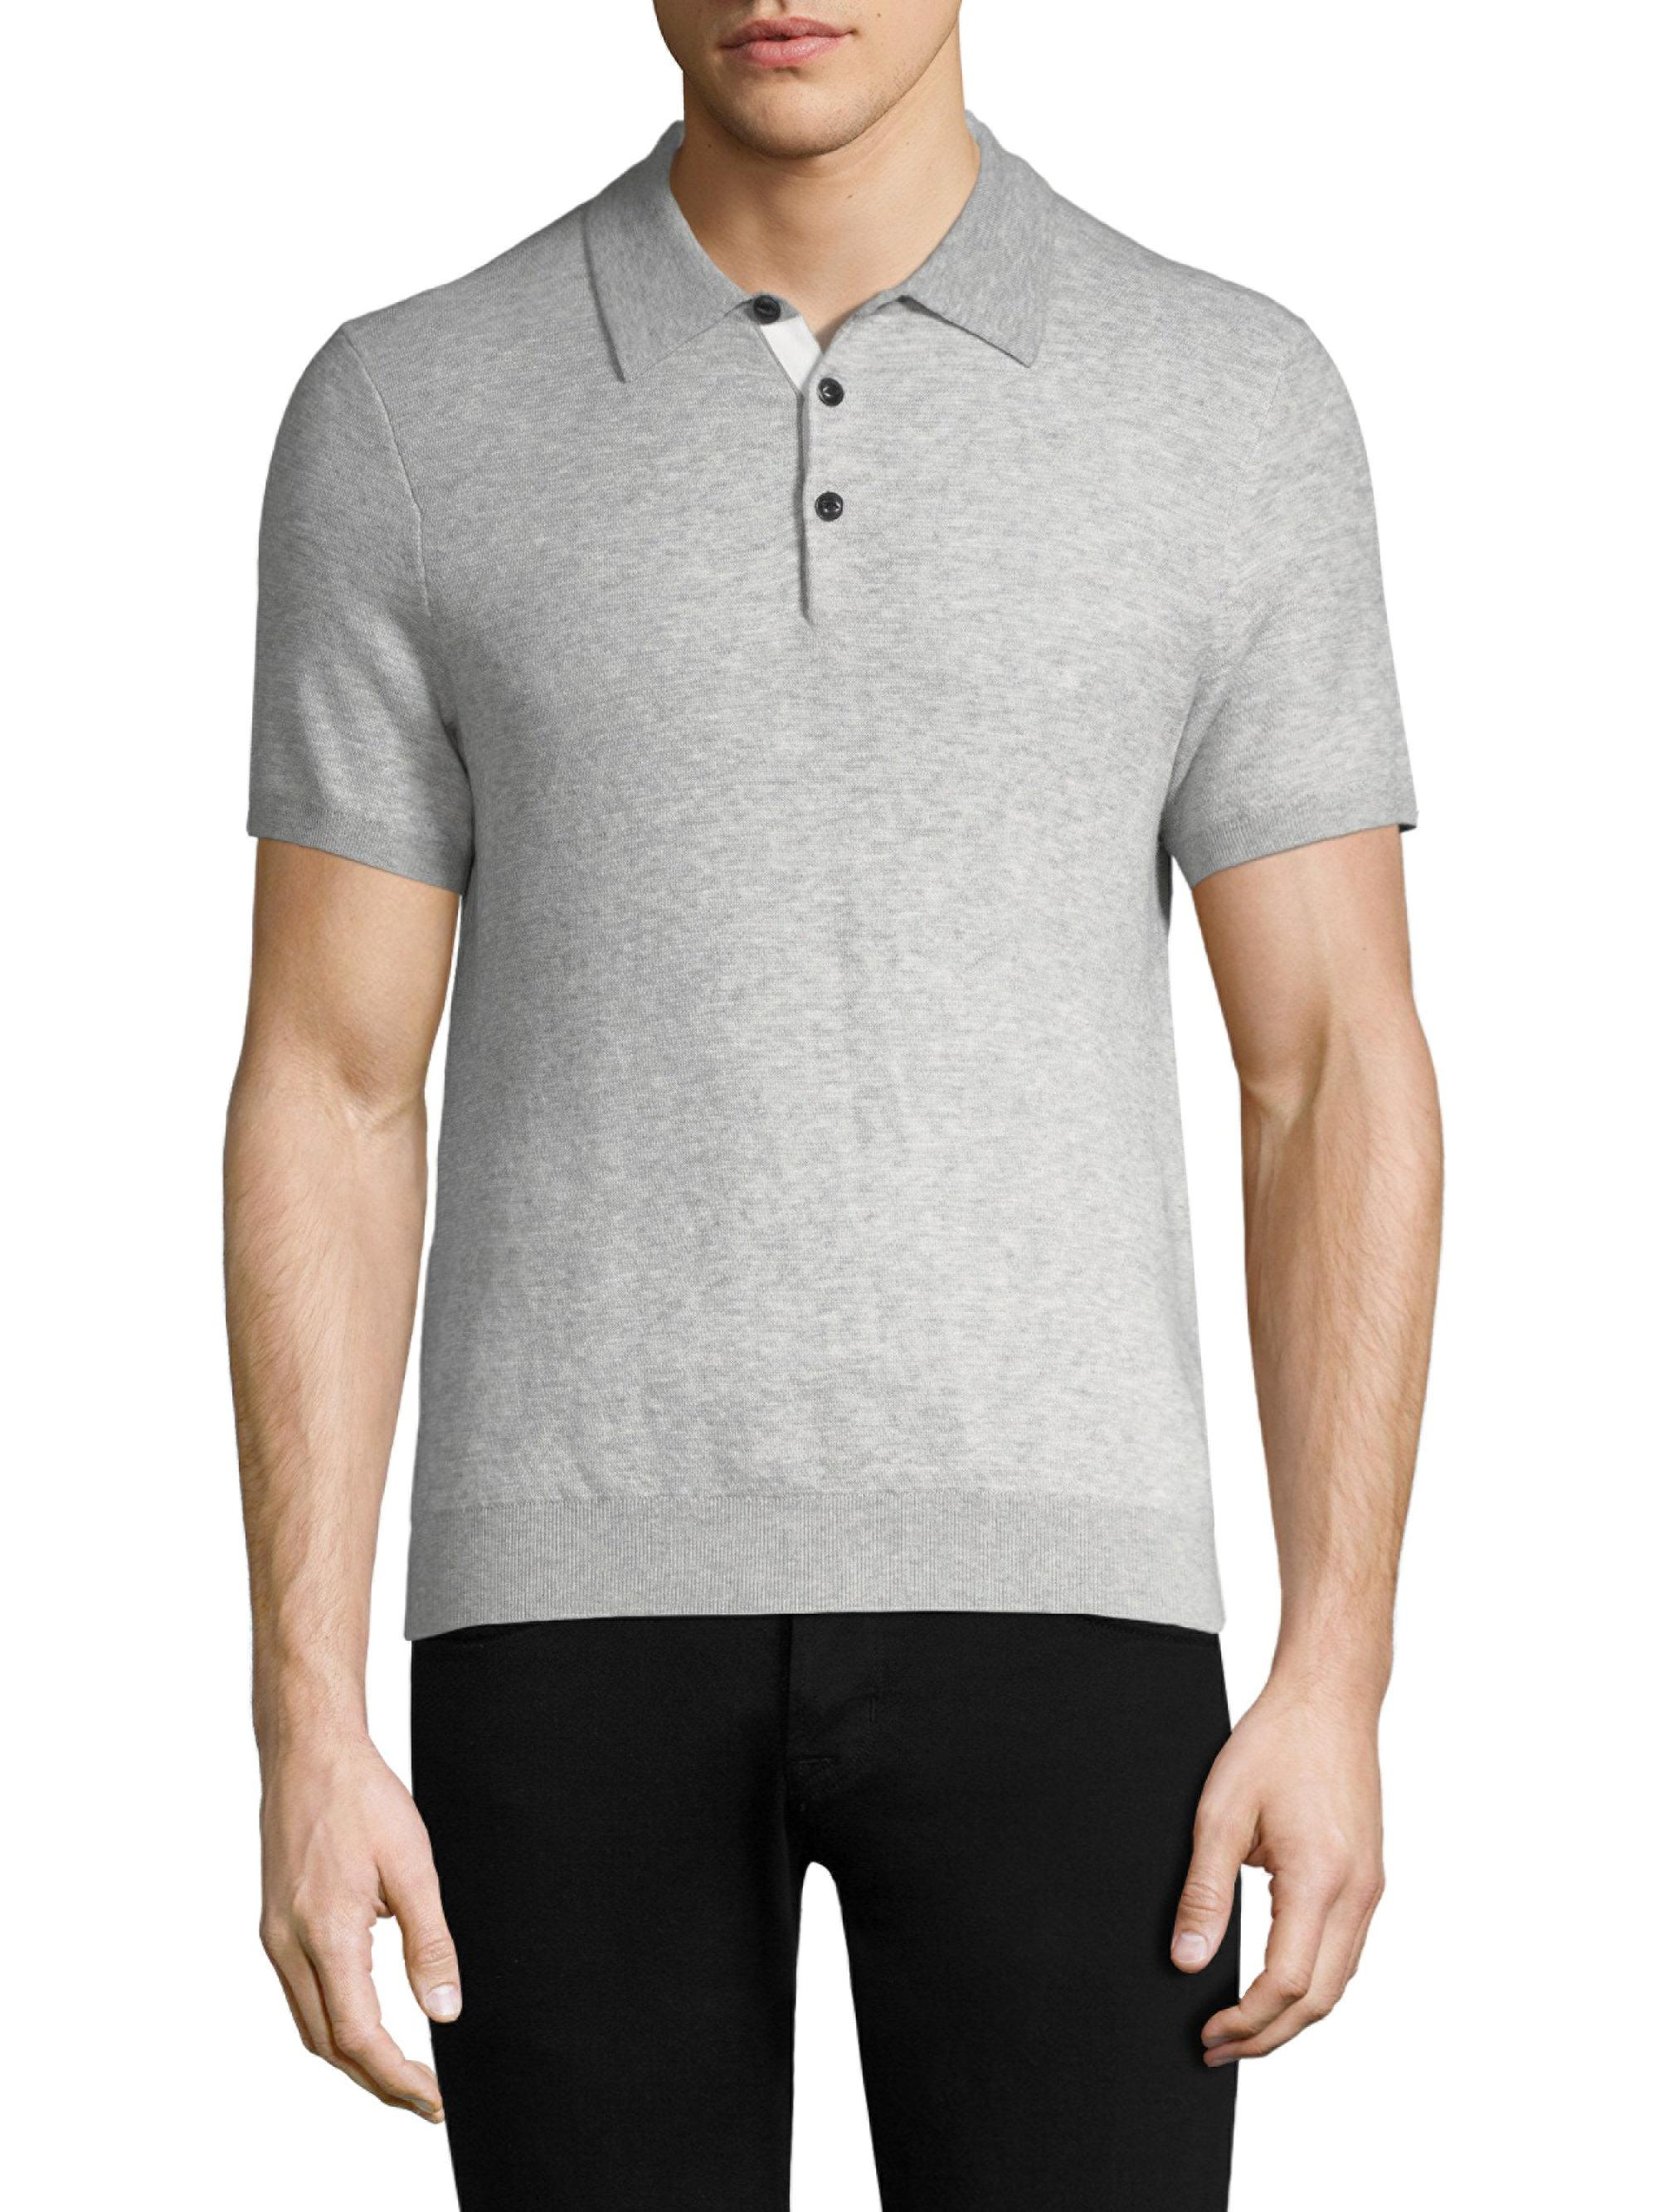 Lyst - Rag   Bone Tripp Polo in Gray for Men 199937b491a